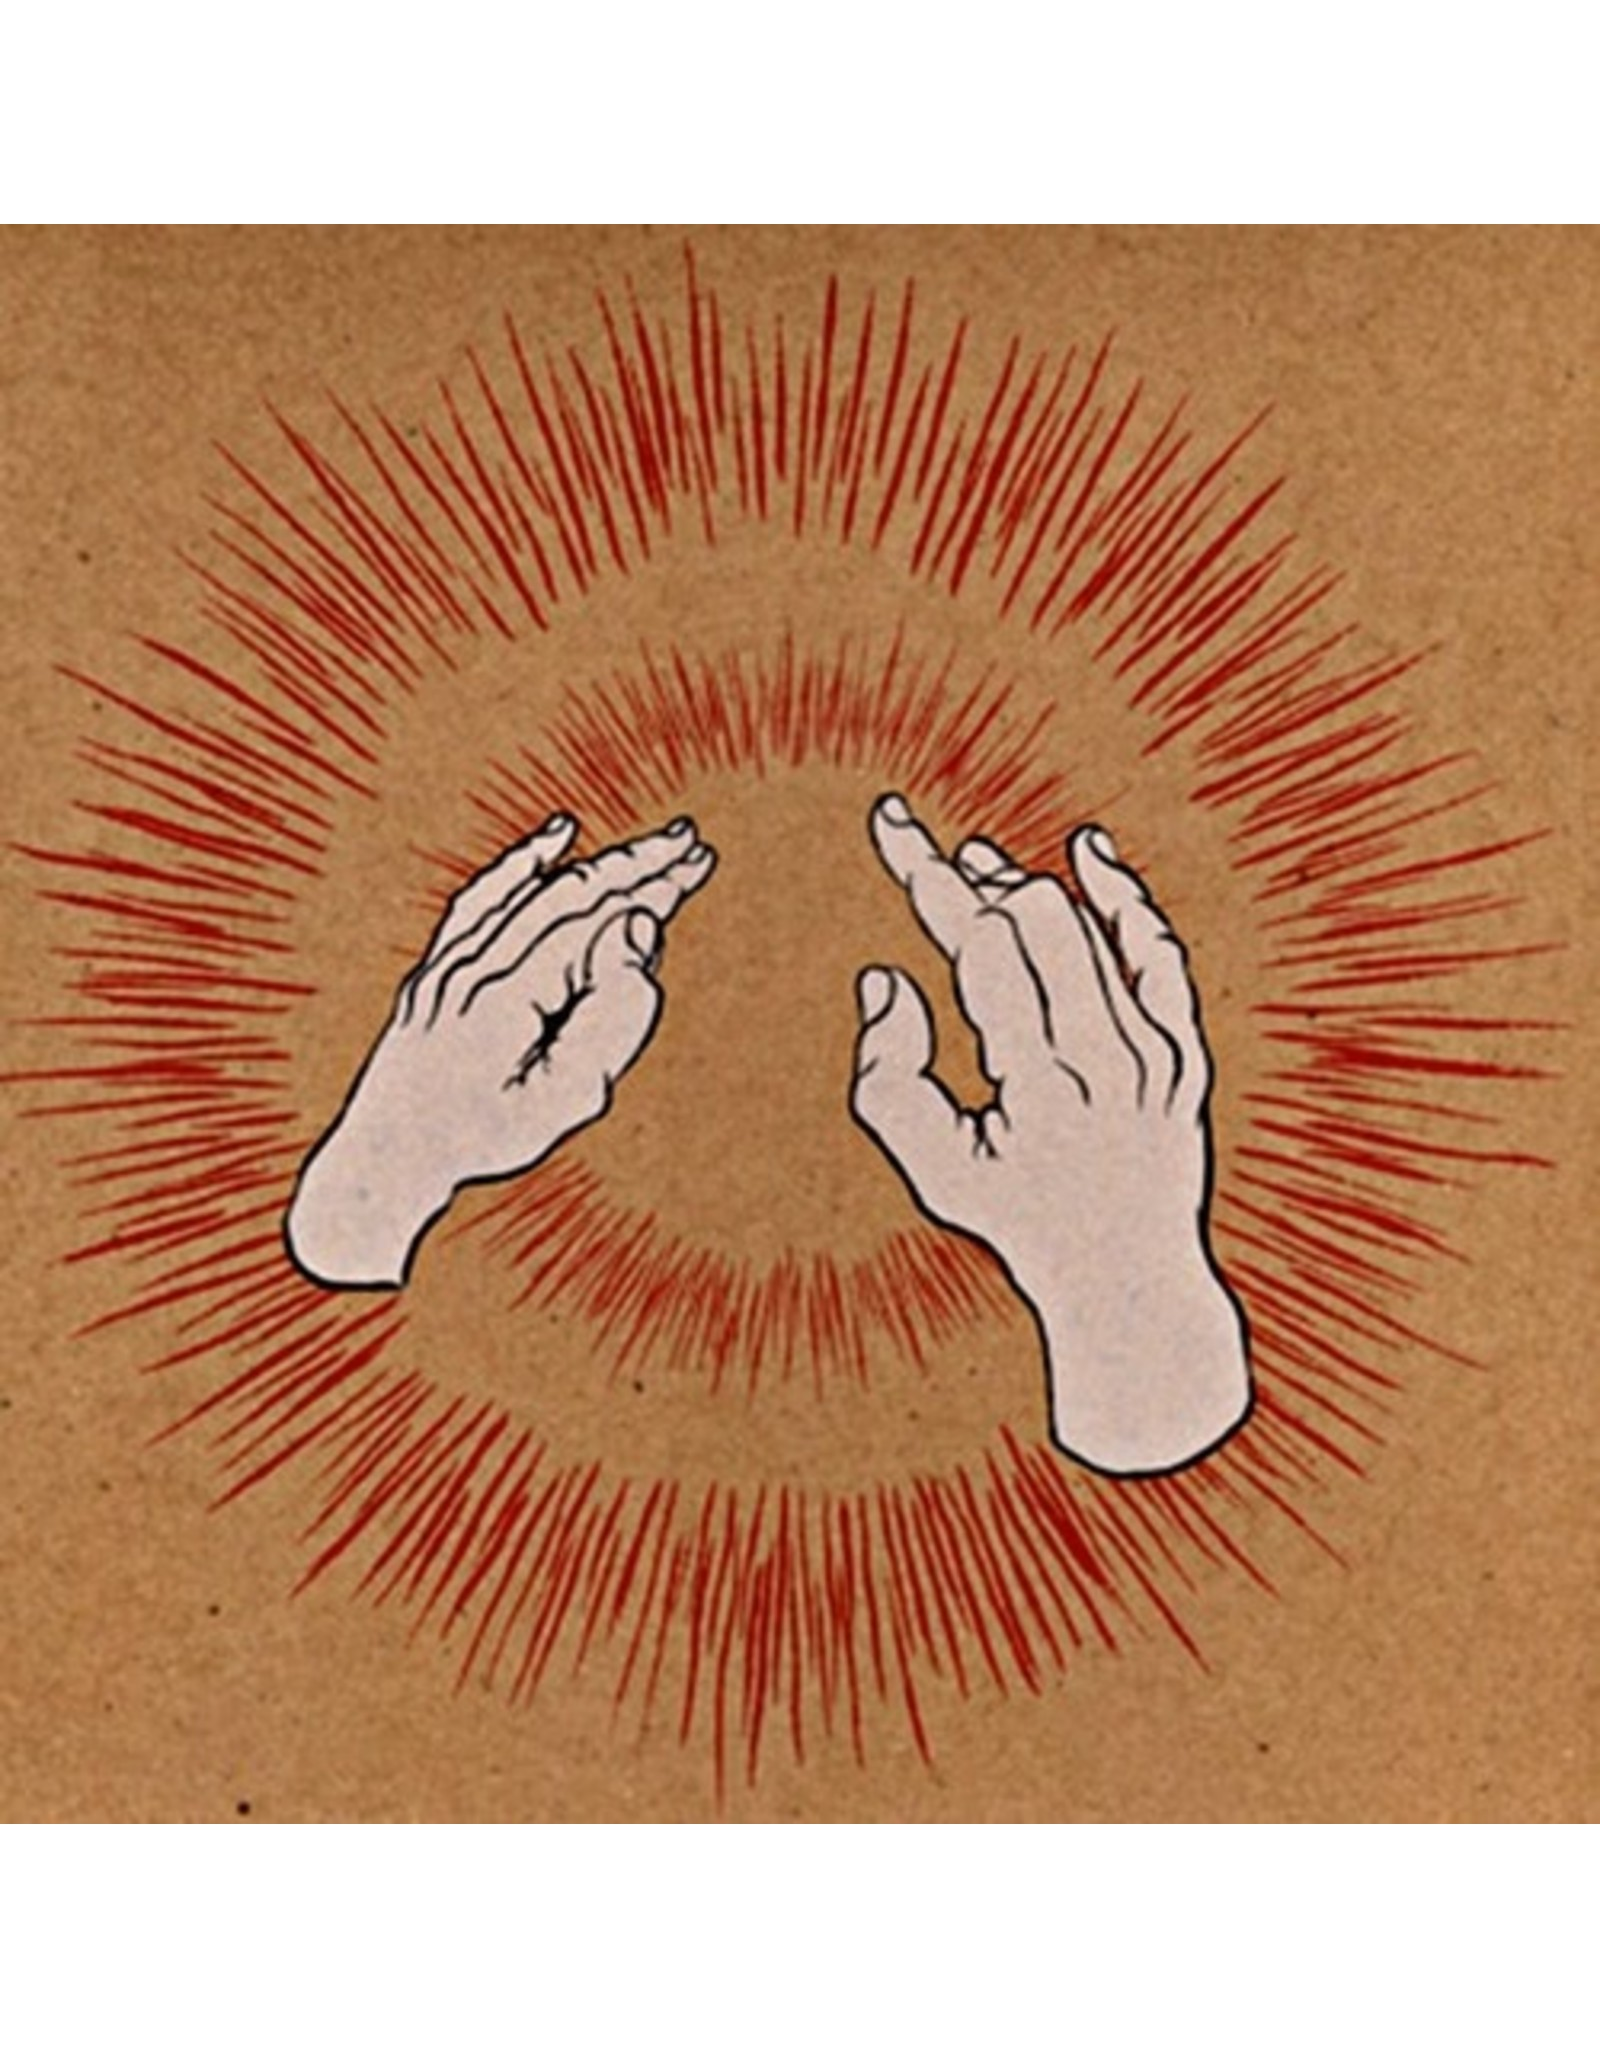 New Vinyl Godspeed You Black Emperor - Lift Your Skinny Fists Like Antennas To Heaven 2LP